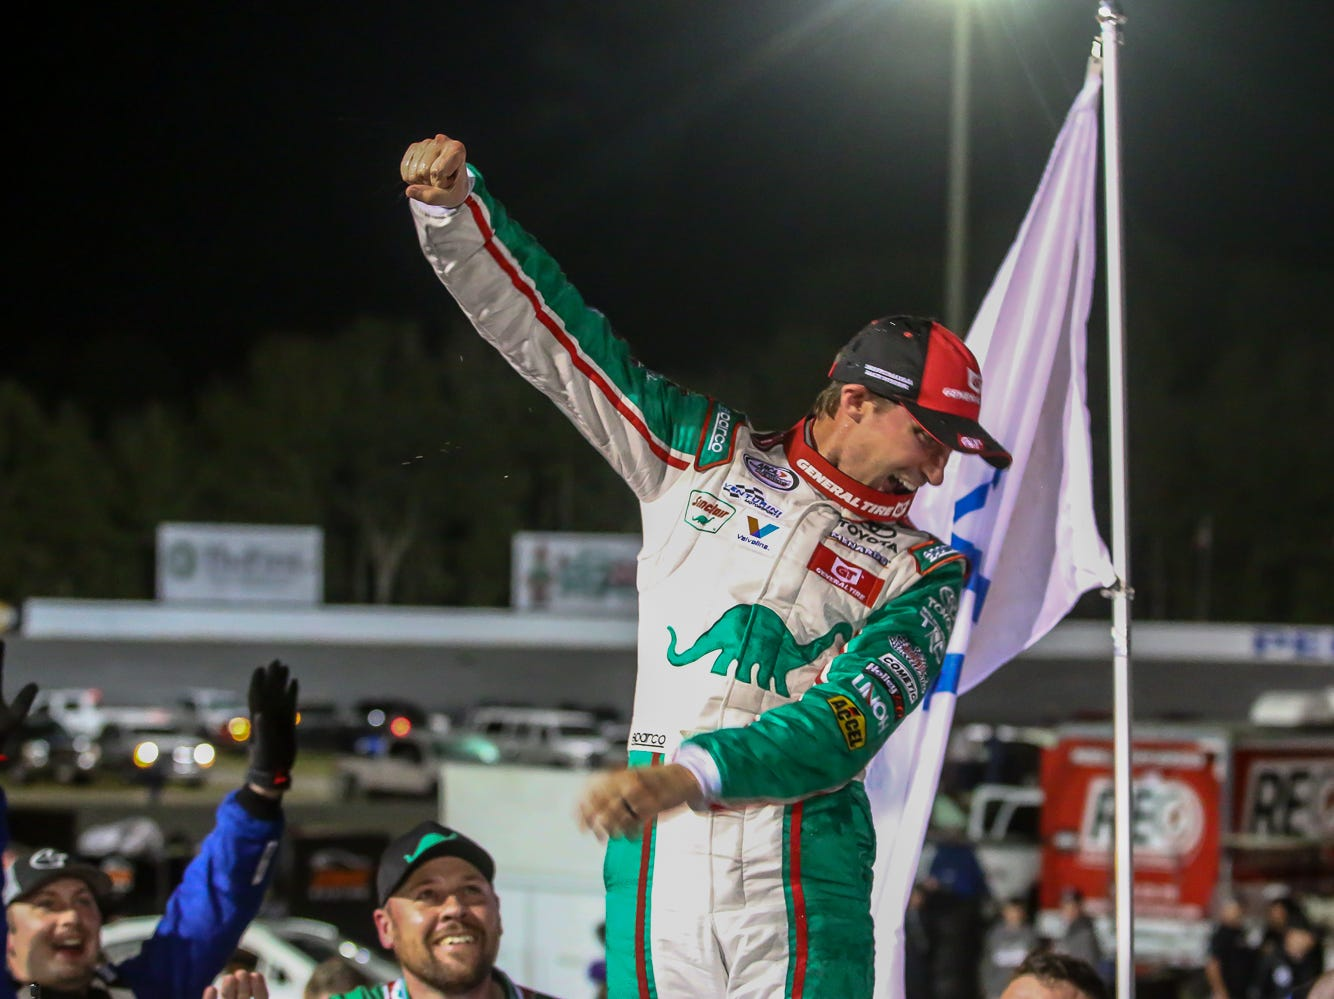 Michael Self (25), of Salt Lake City, celebrates after winning the ARCA Pensacola 200 race presented by Inspectra Thermal Solutions on Saturday, March 9, 2019, at Five Flags Speedway. He started the race in the number two position.